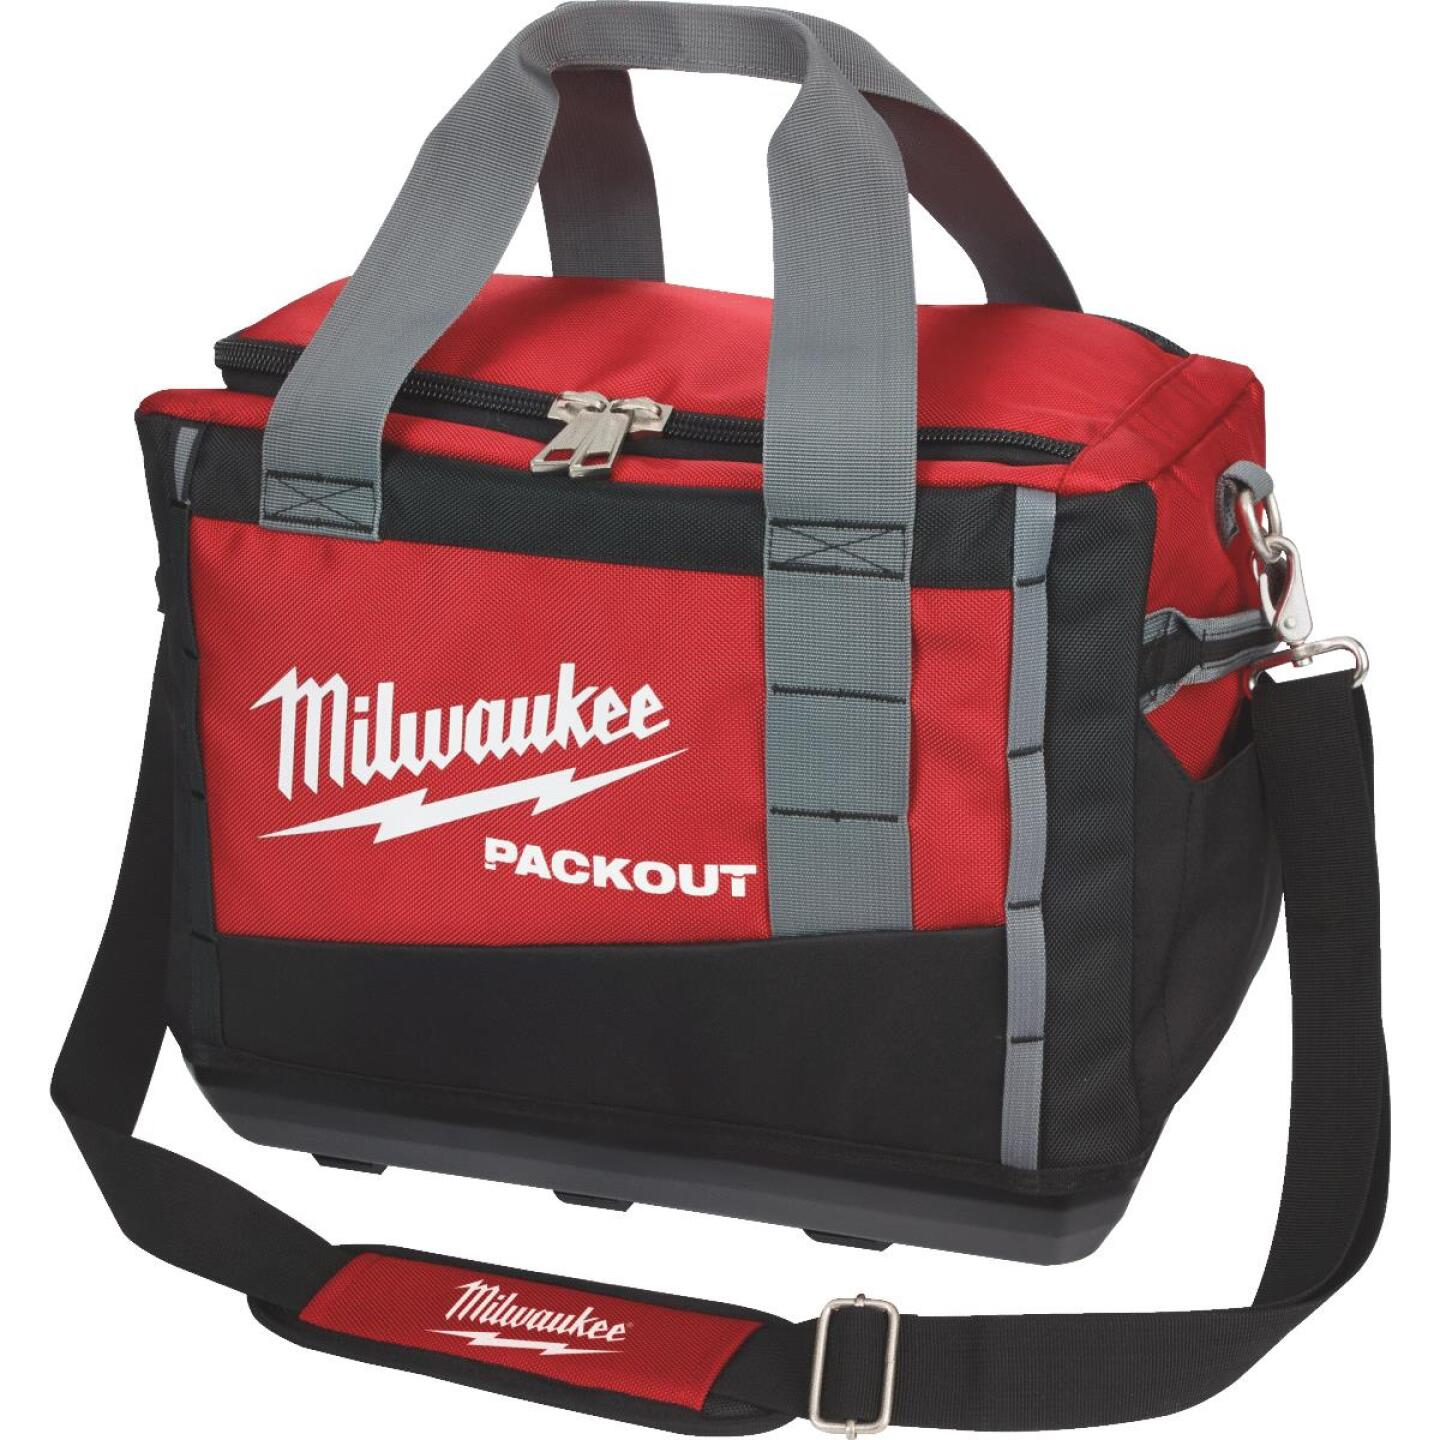 Milwaukee PACKOUT 3-Pocket 15 In. Tool Bag Image 1